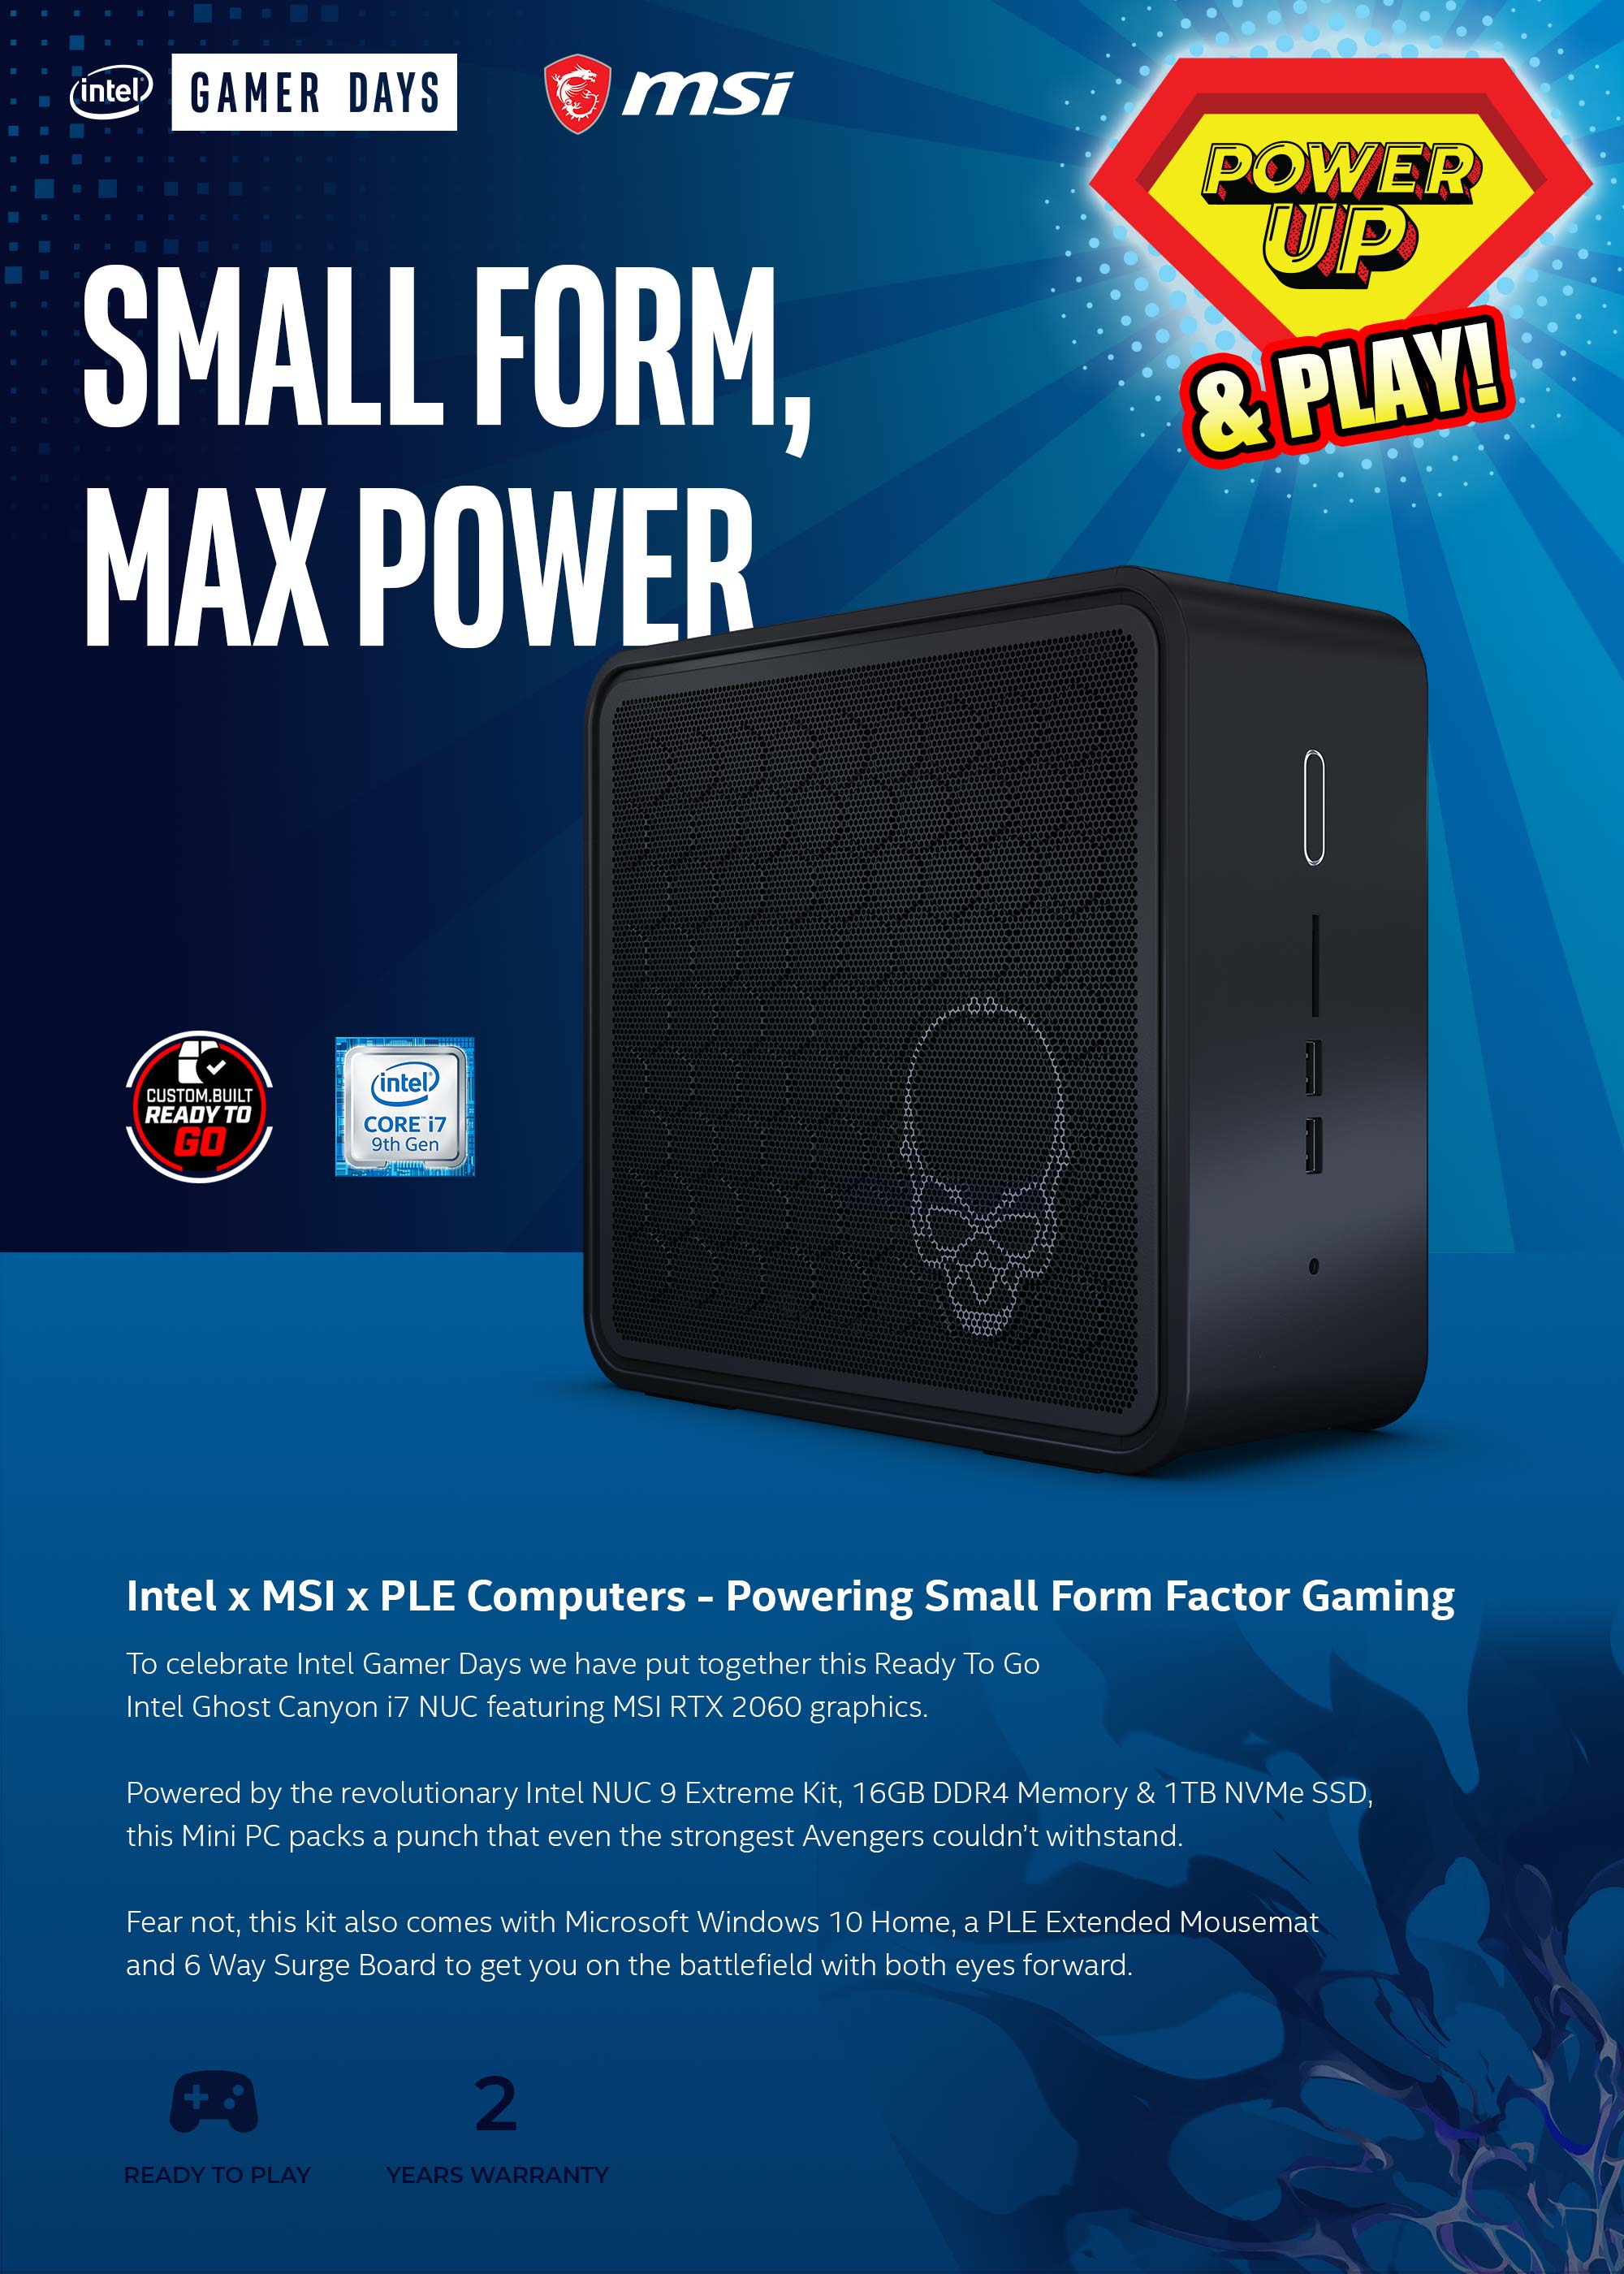 A large marketing image providing additional information about the product PLE i7 Ghost Canyon Ready To Go Mini PC - Additional alt info not provided